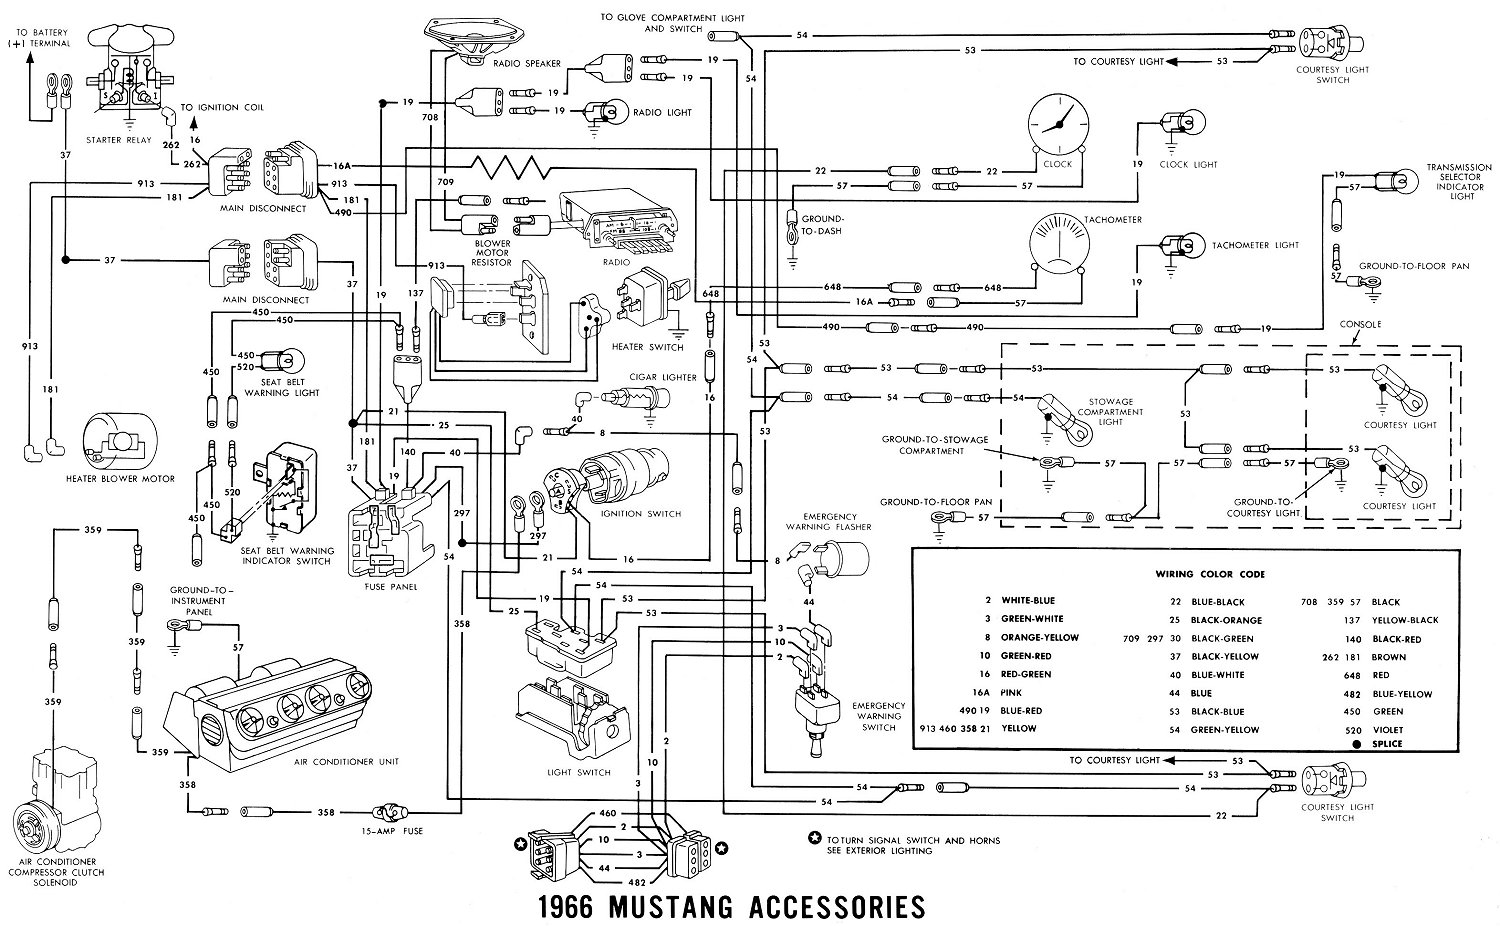 66acces1 mustang wiring harness diagram 66 mustang wiring diagram \u2022 free 93 mustang wiring harness diagram at gsmx.co